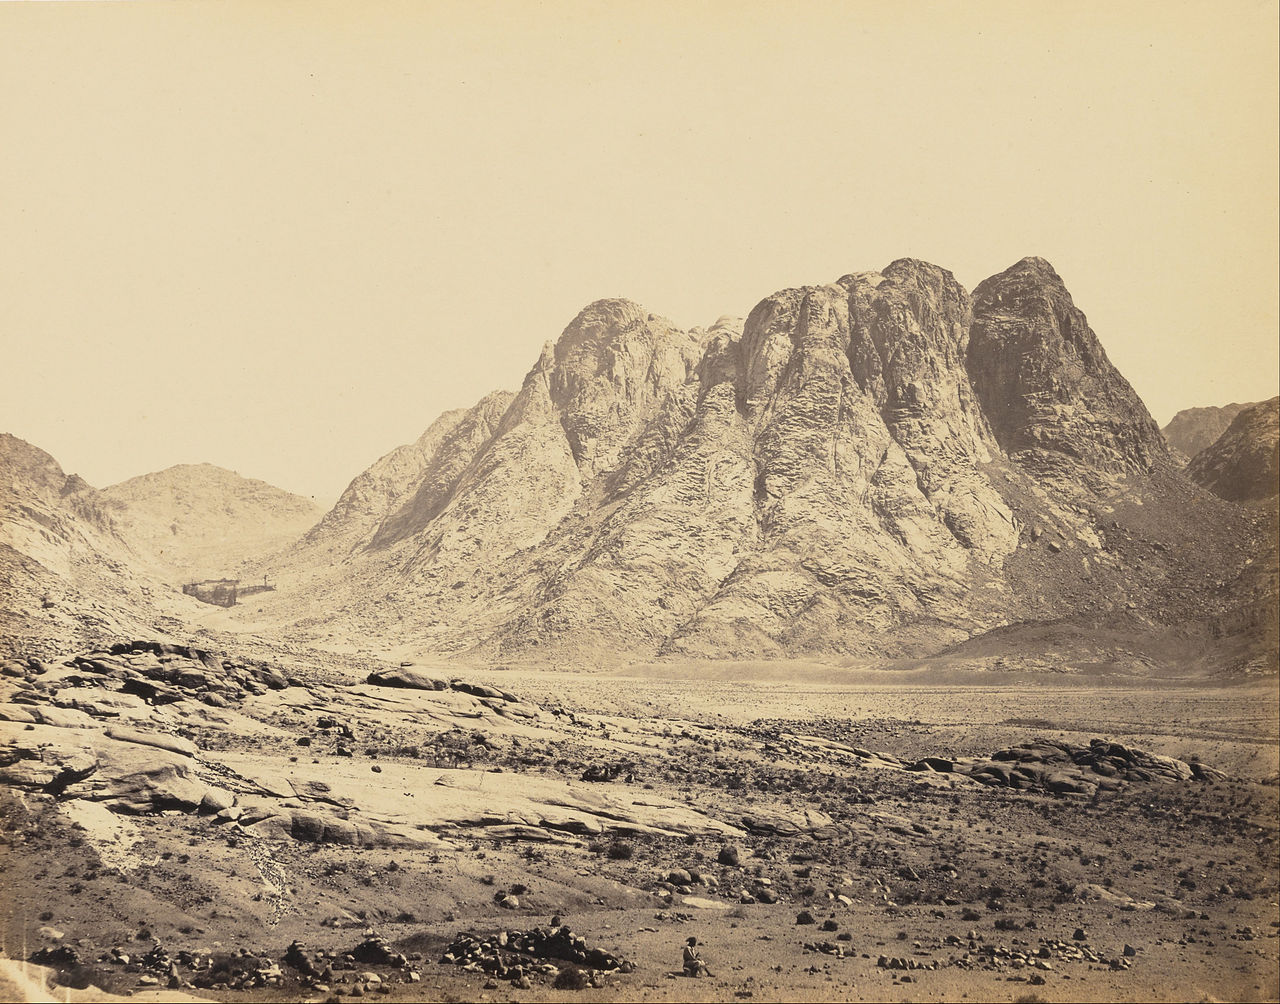 mount horeb latin dating site (in arab : moses' mountain or mount moses), also known as mount horeb  site on june 22, 2013 as per unesco, mount  pictures dating from.